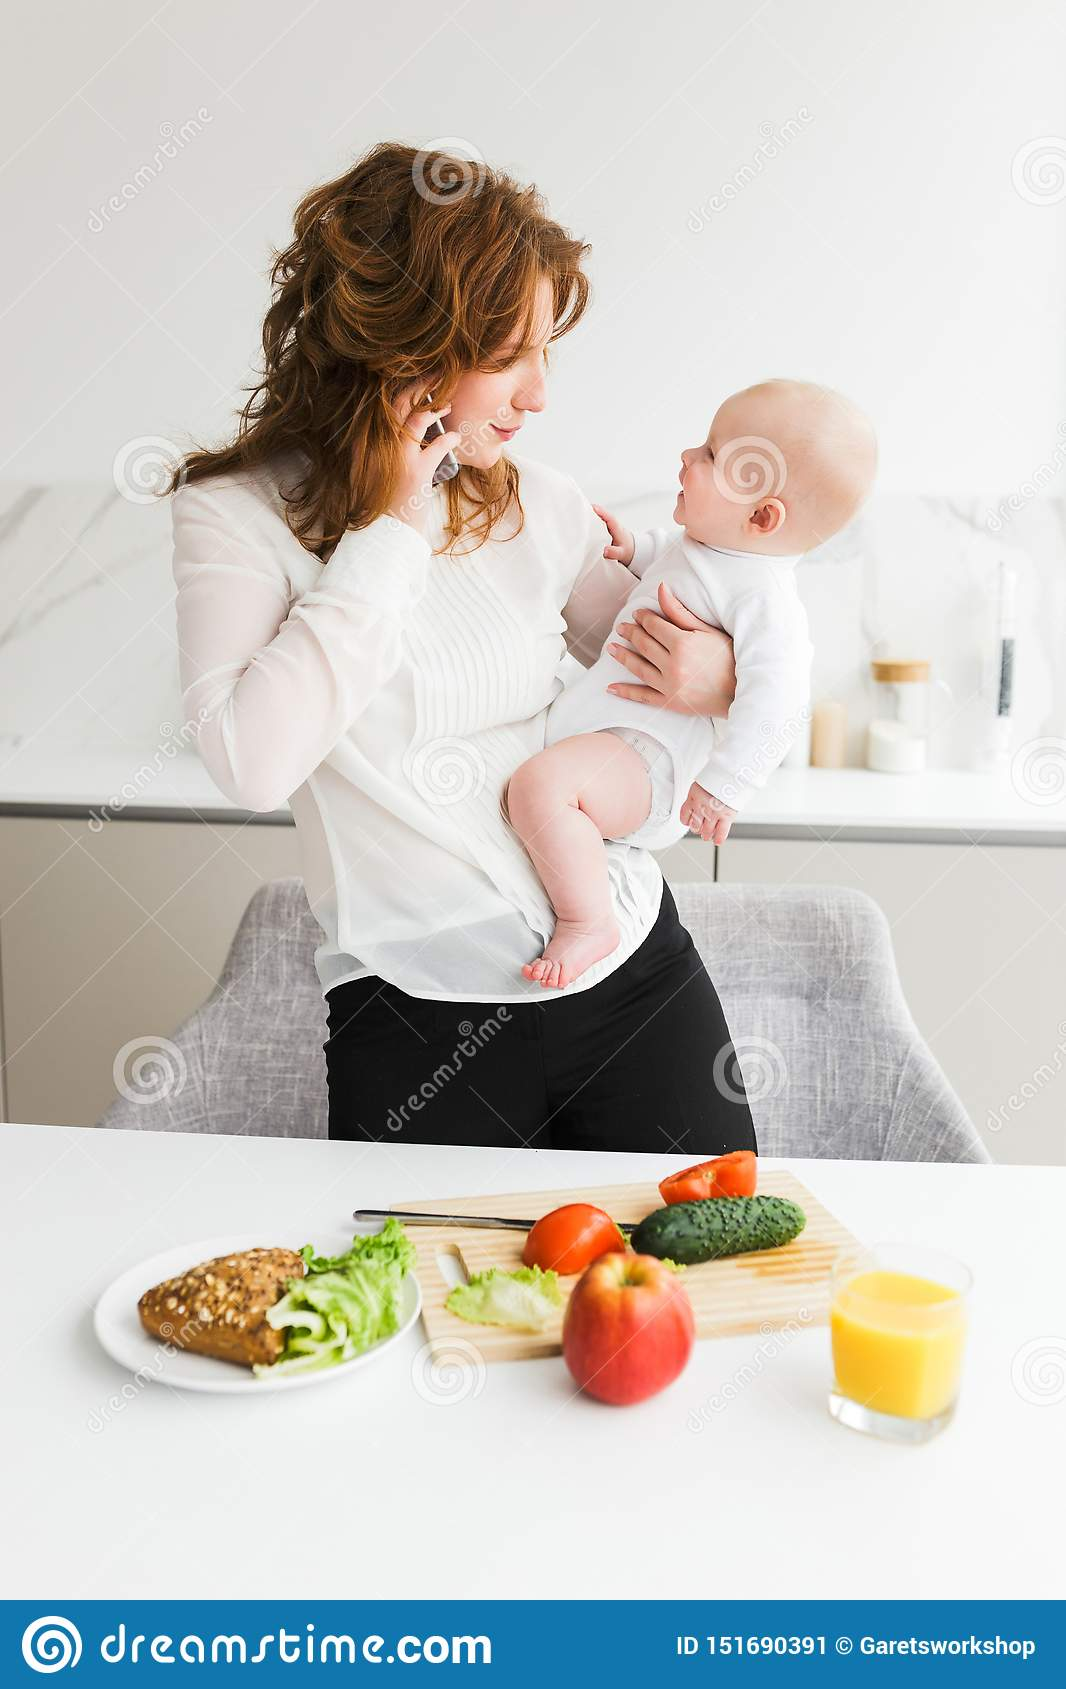 Beautiful mother holding her happy little baby while talking on her cellphone and cooking on kitchen